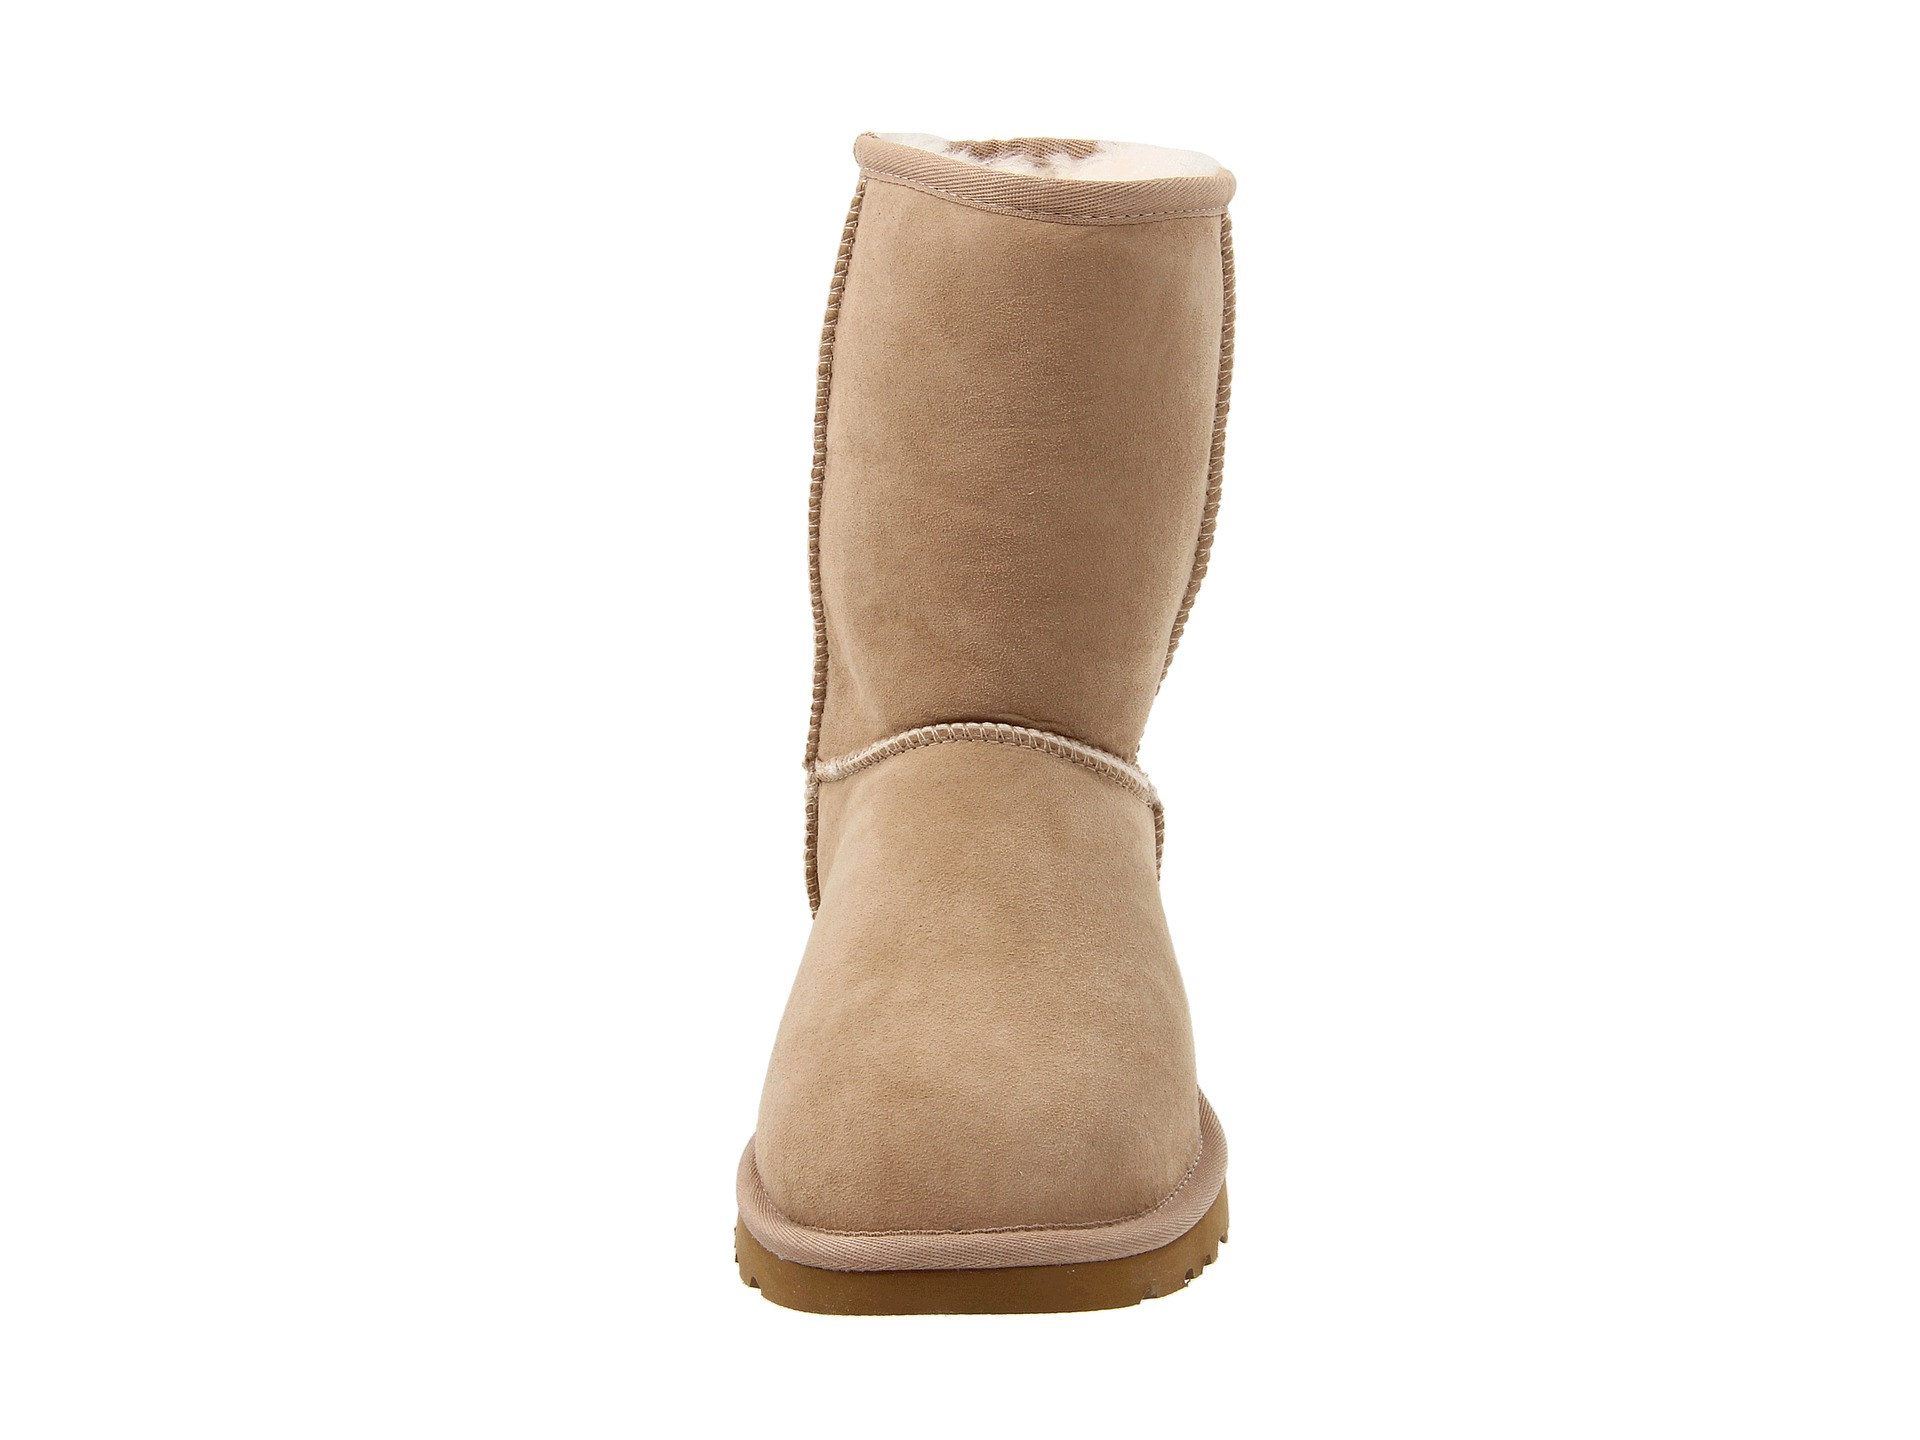 Ugg size chart up or down cheap watches mgc gas ugg size chart up or down nvjuhfo Gallery